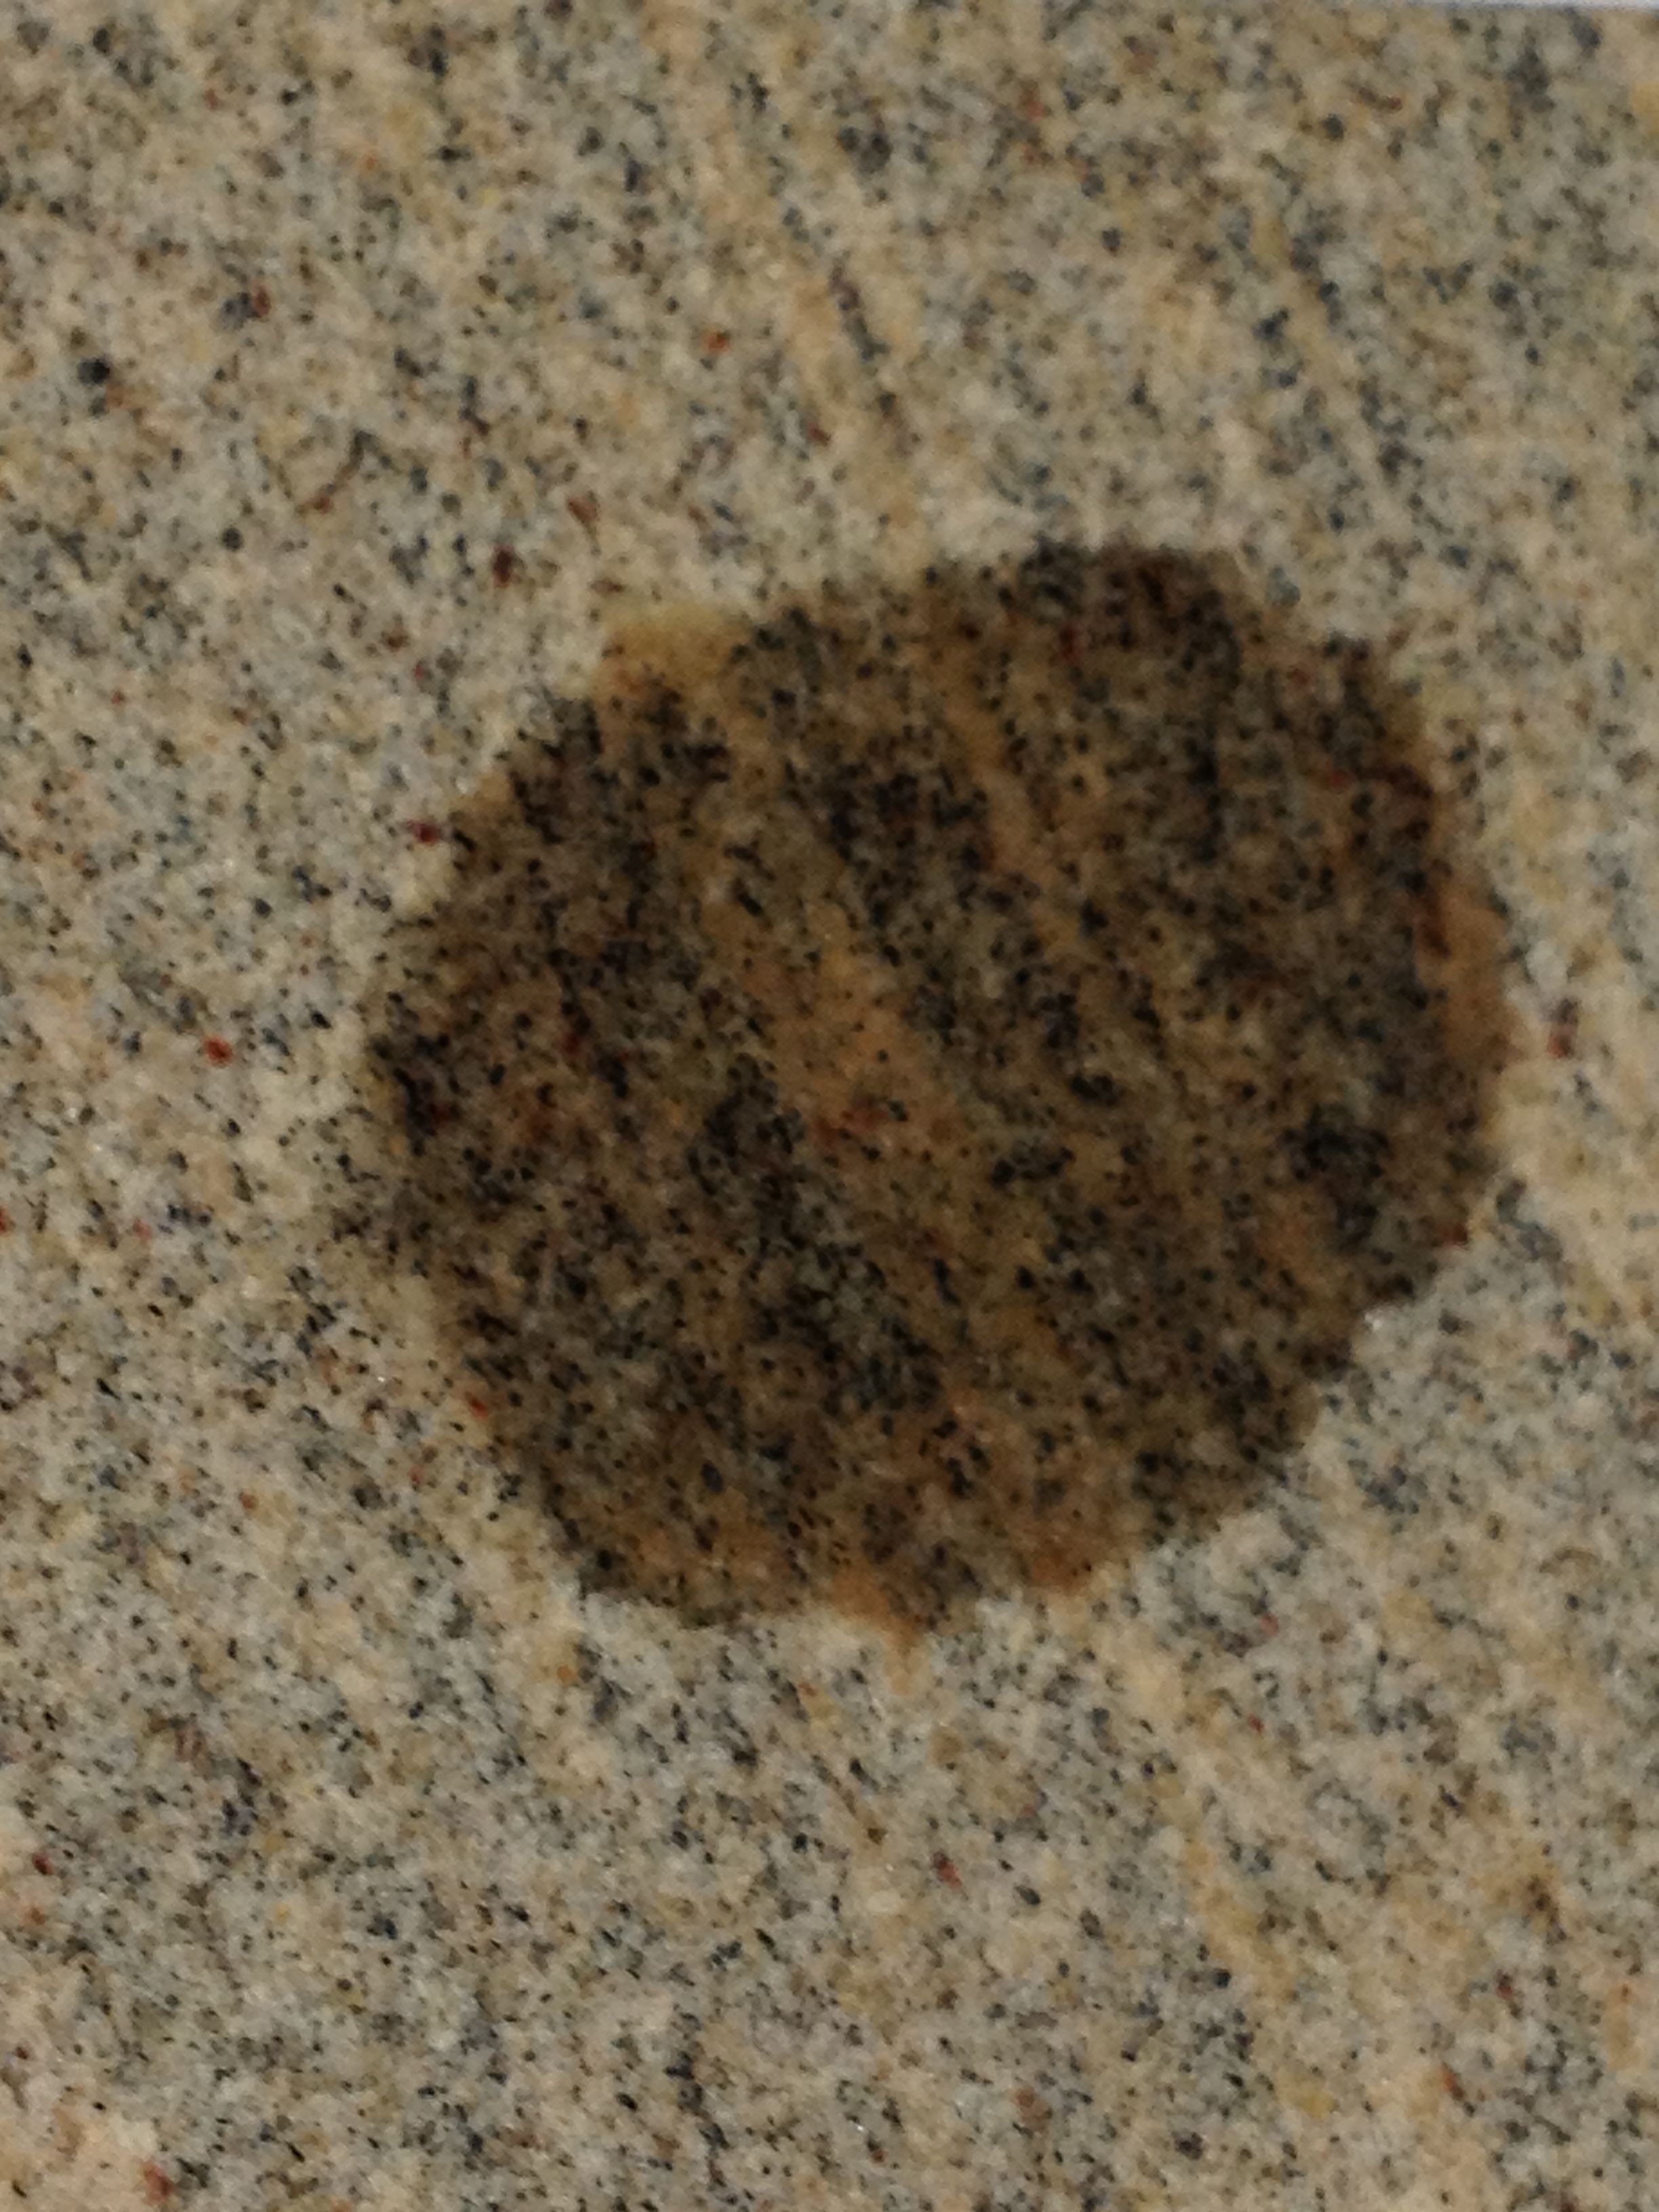 How To Get Rid Of Water Spots On Granite Countertops